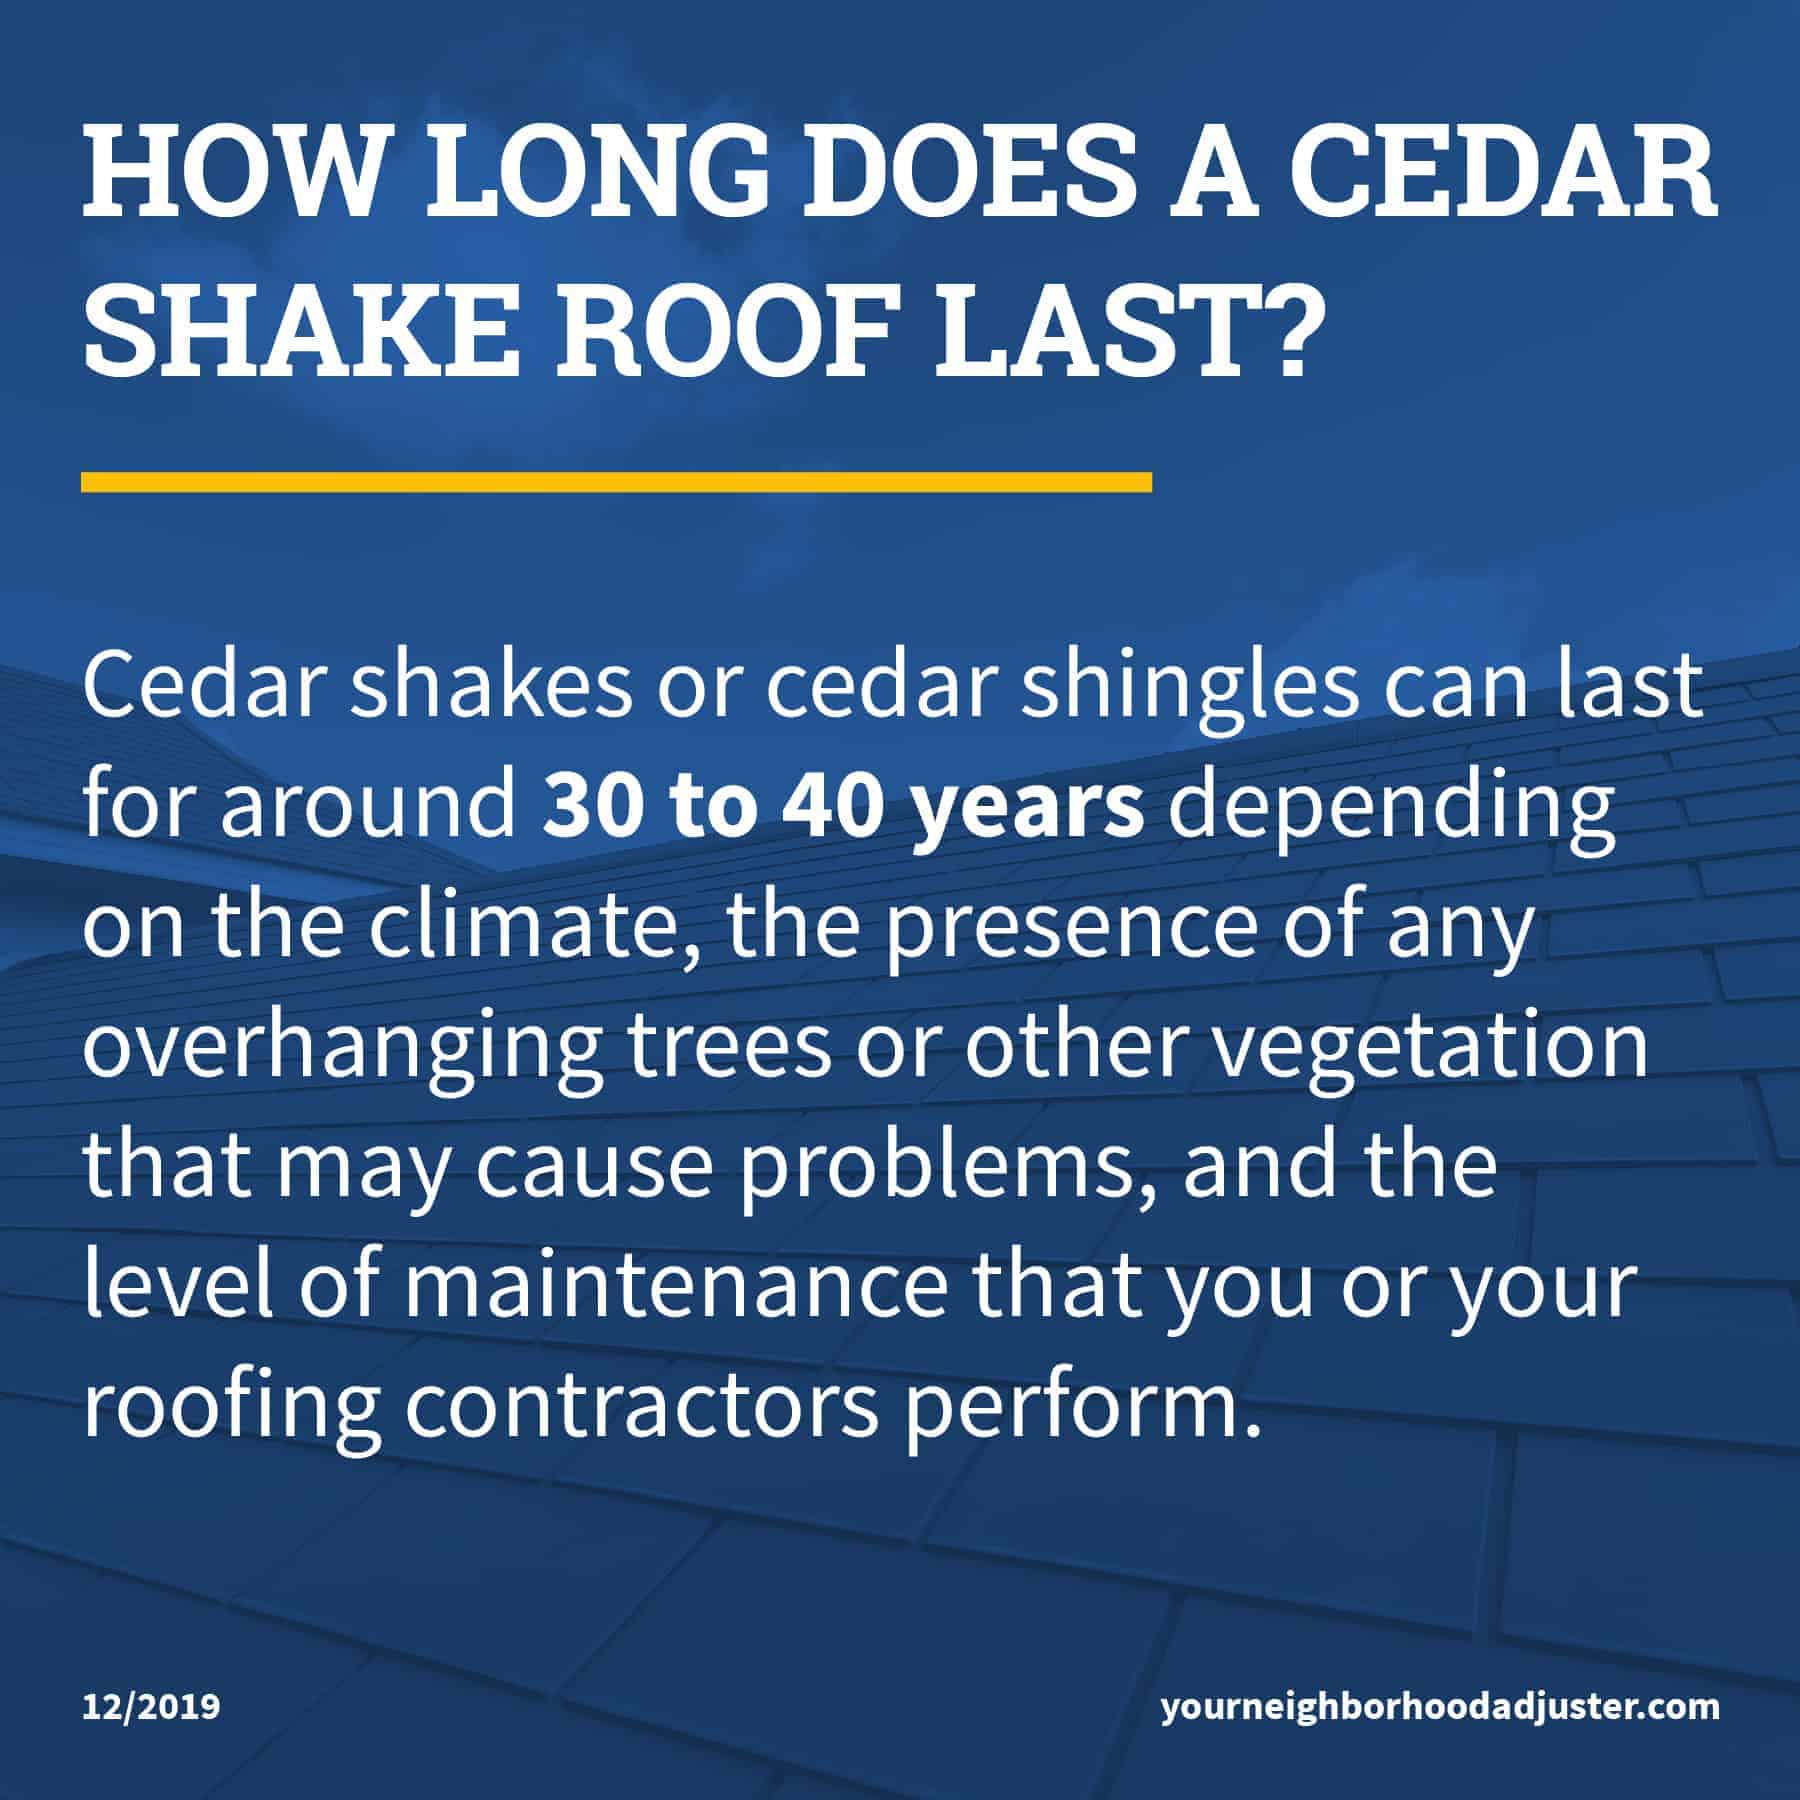 how long does a cedar shake roof last